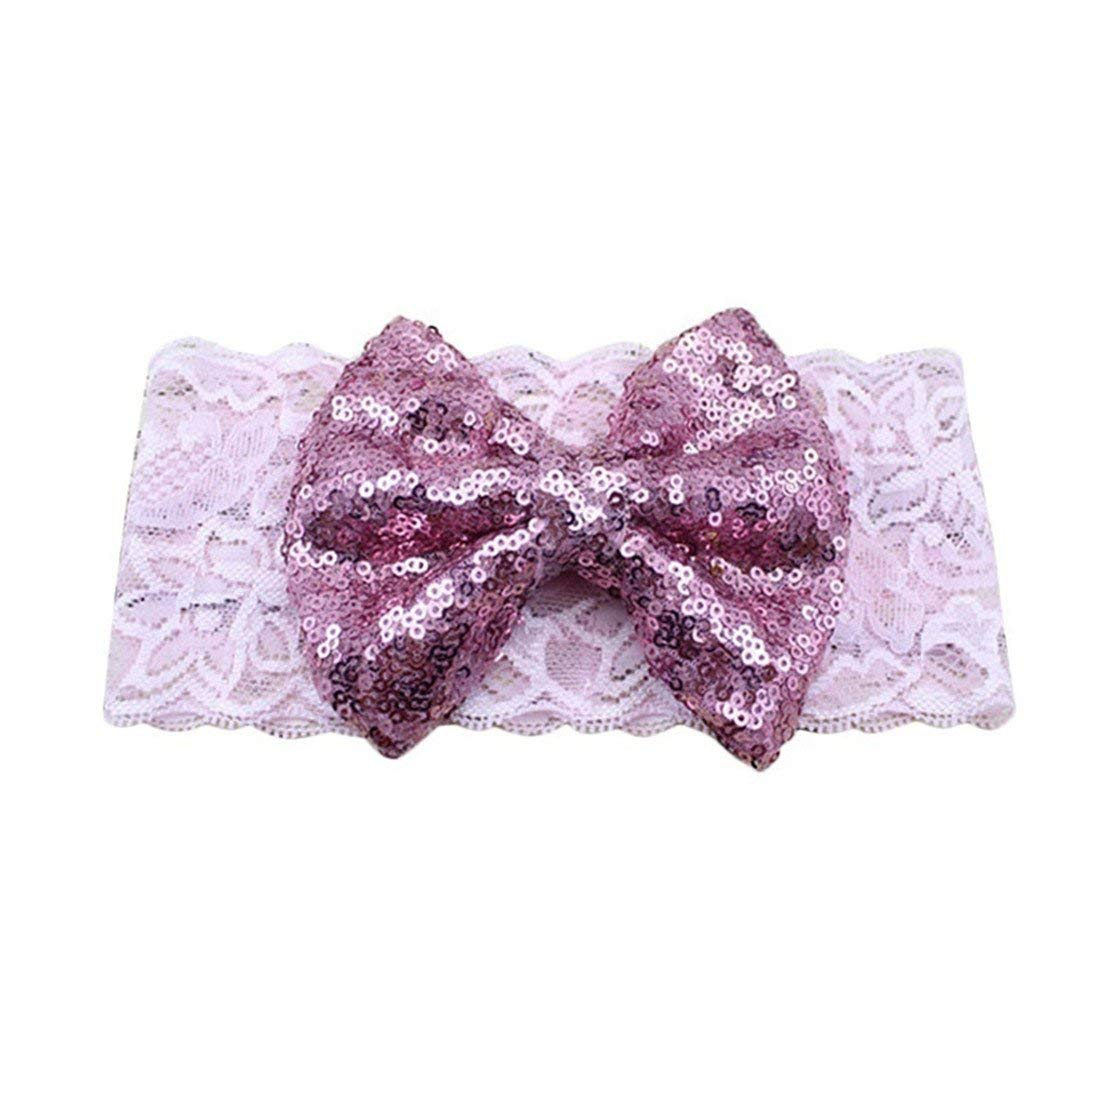 0a95f4fa656a3 Get Quotations · VWH Baby Girls Toddler Lace Sequin Bowknot Turban Hair  Band Headband Head Wrap (Pink)